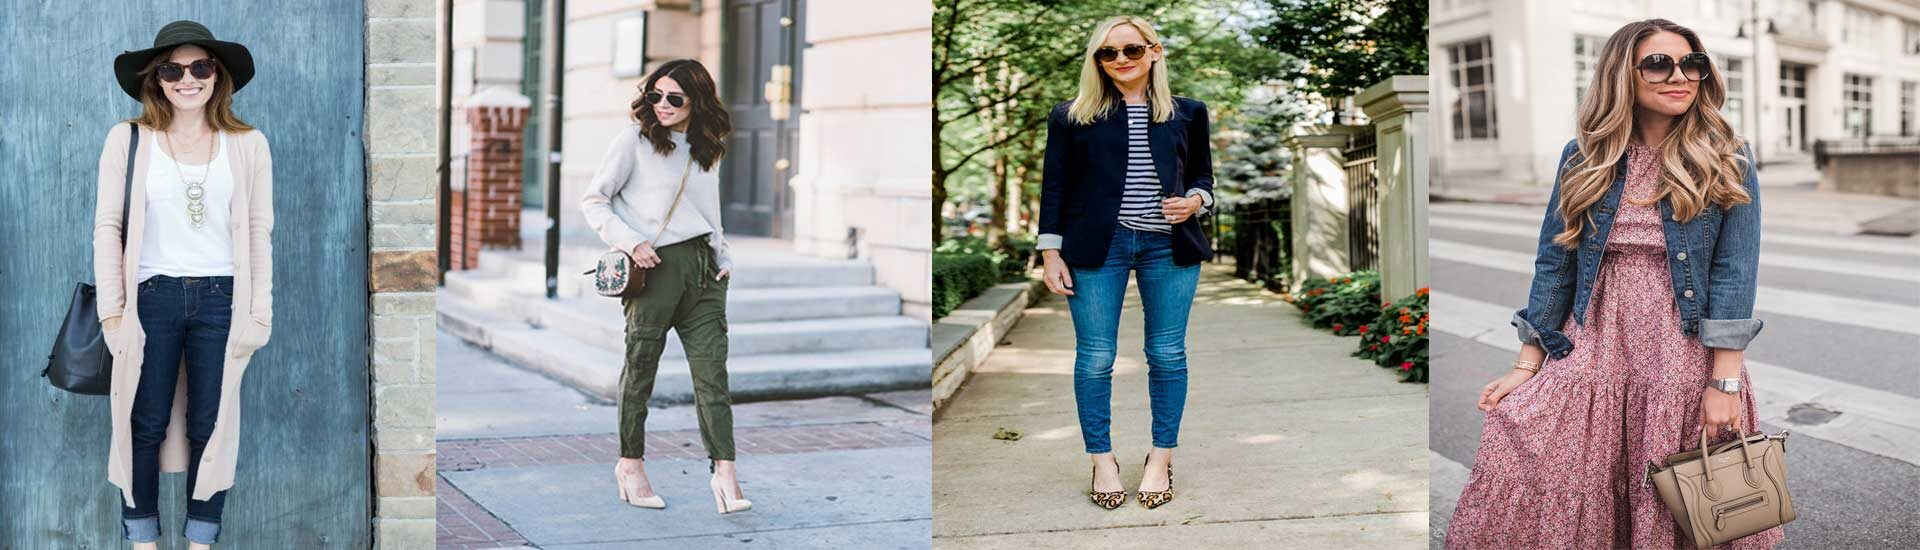 Travel-Outfits-for-Women